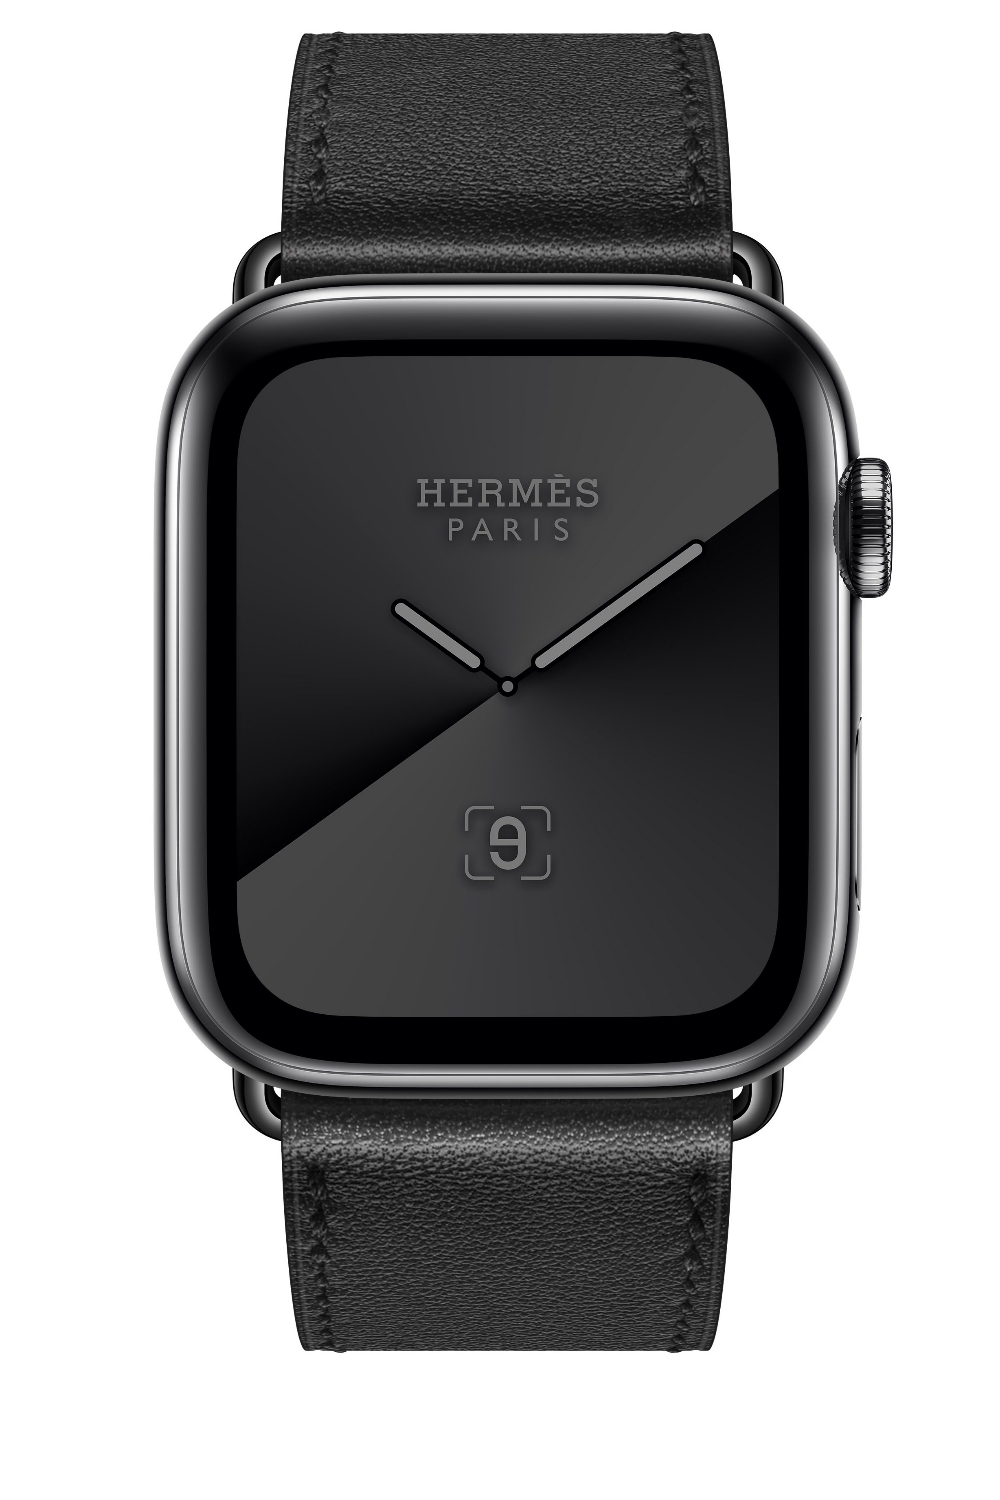 All you need to know about Apple Hermès watch Hermes